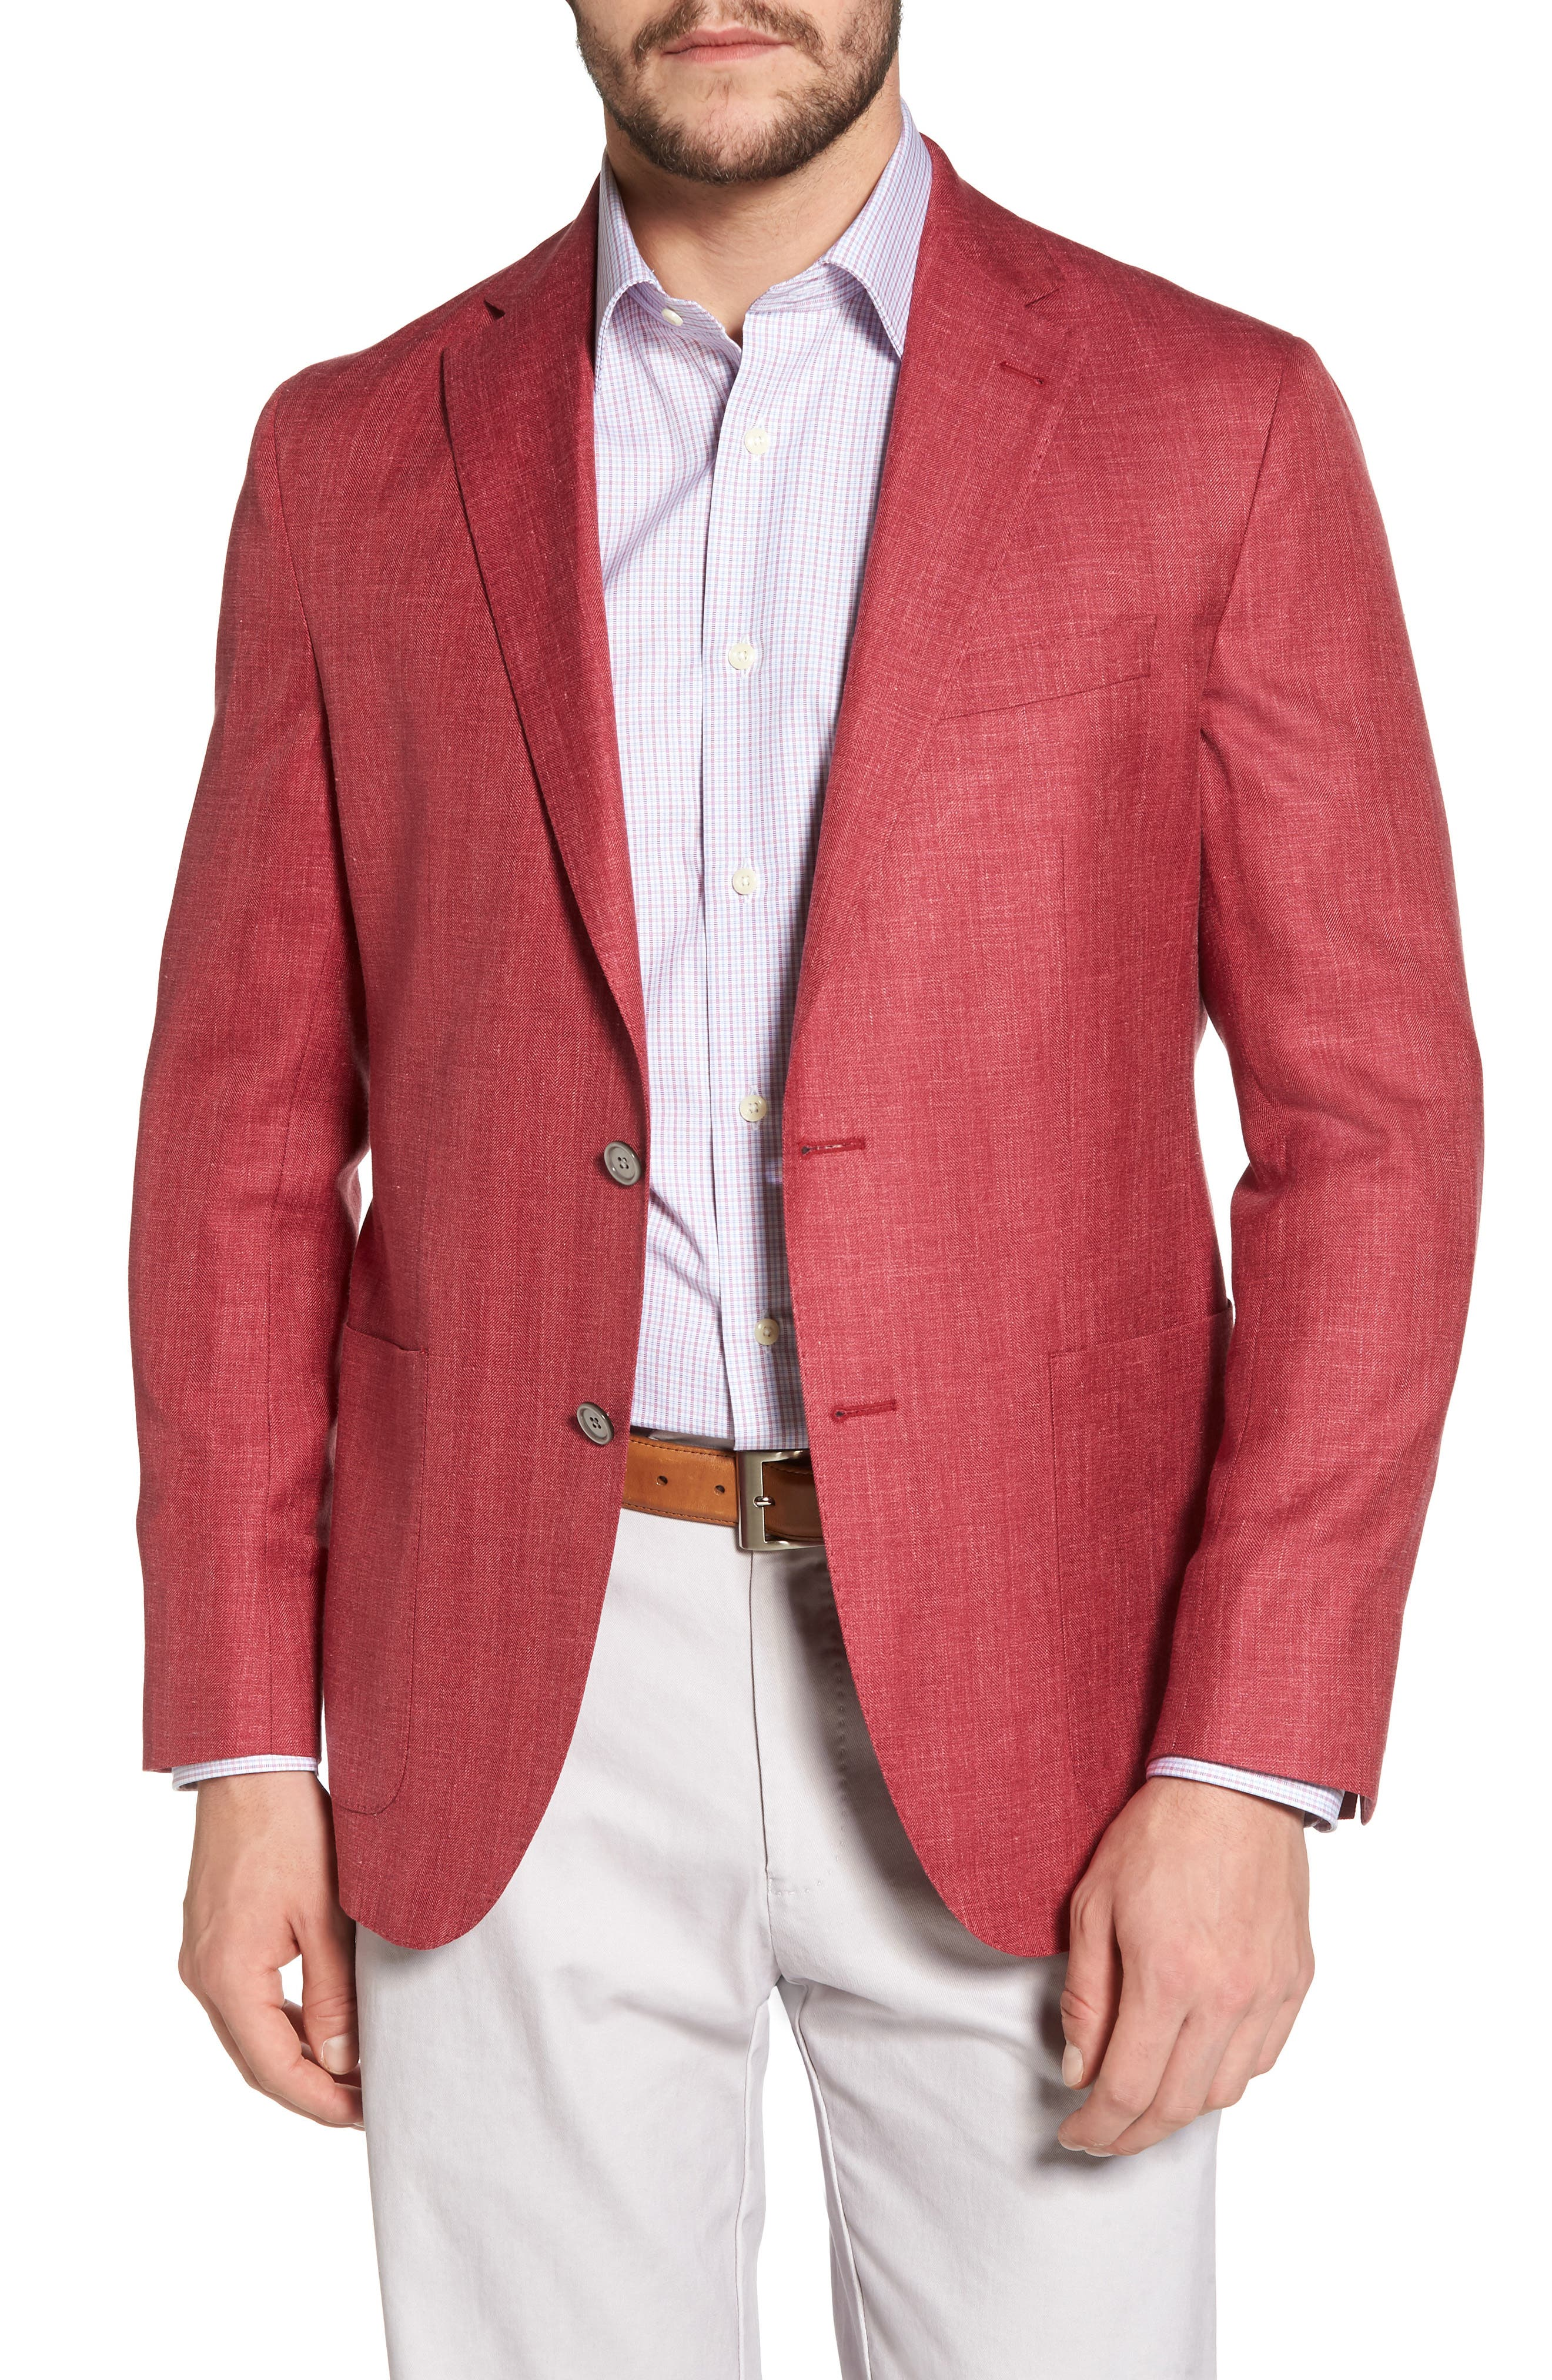 Aiden Classic Fit Wool Blend Blazer,                         Main,                         color, Red